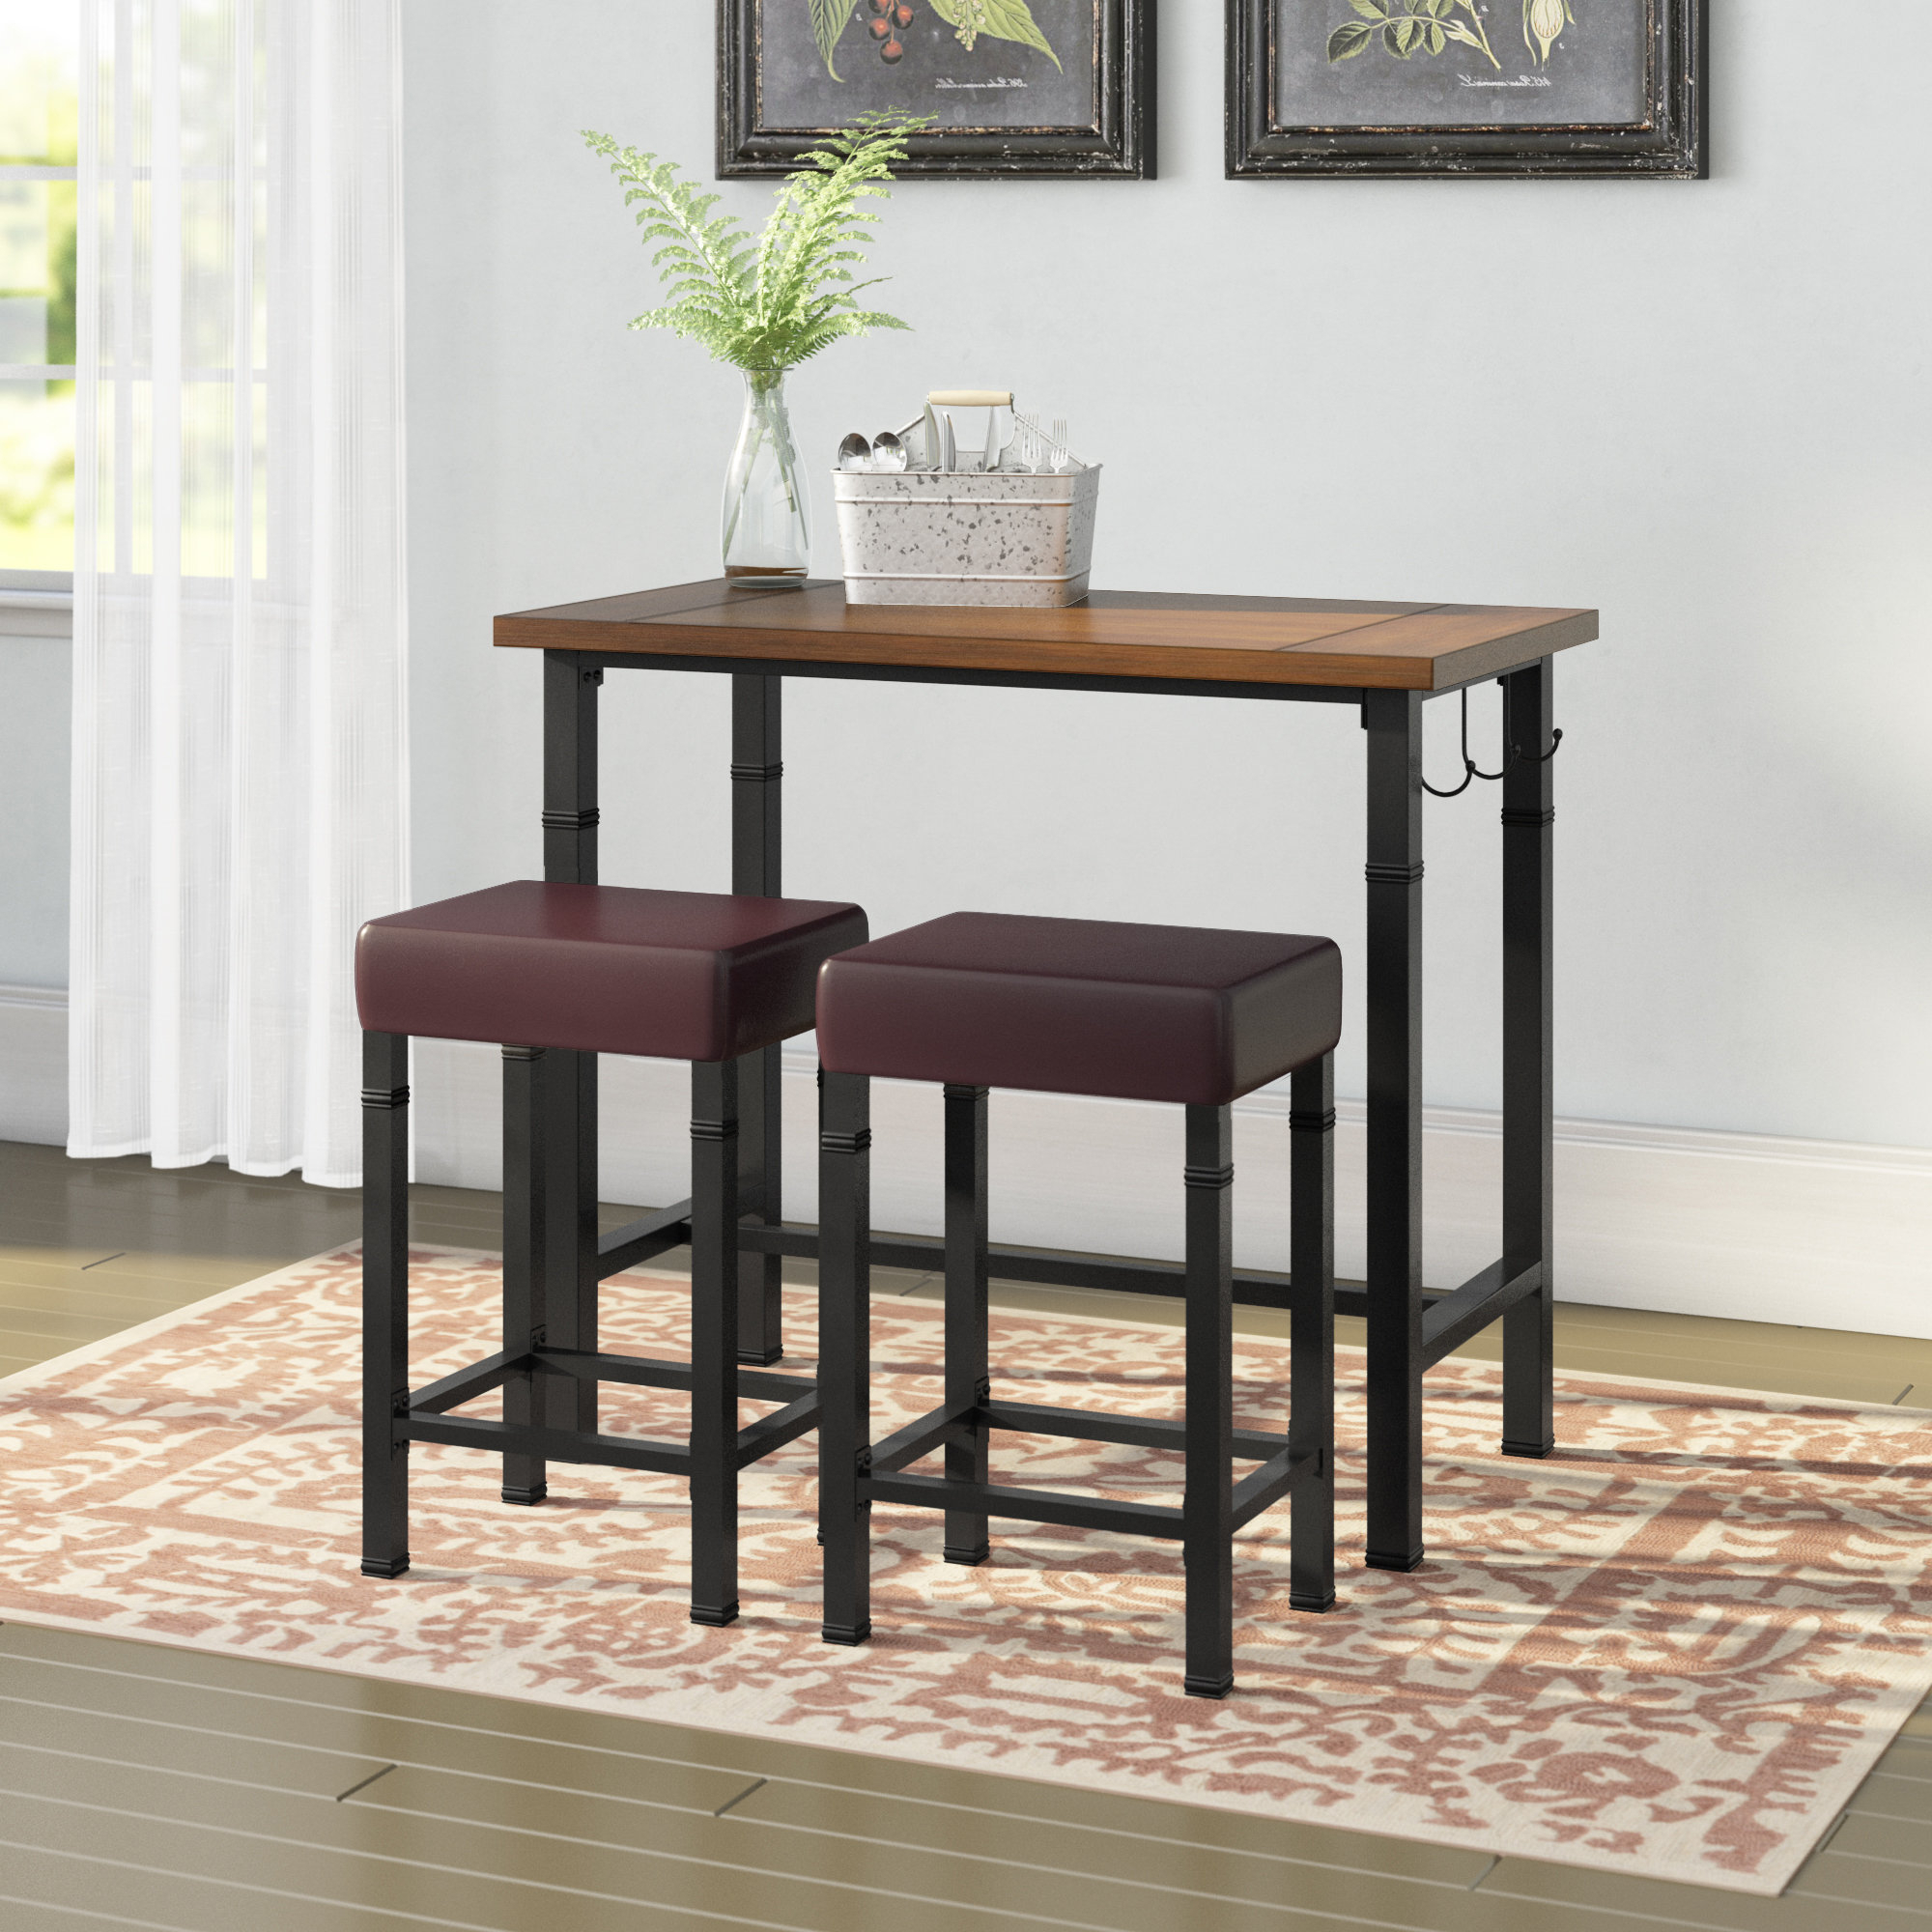 Laurel Foundry Modern Farmhouse Sevigny 3 Piece Pub Table Set Throughout Most Recently Released Hood Canal 3 Piece Dining Sets (View 12 of 25)